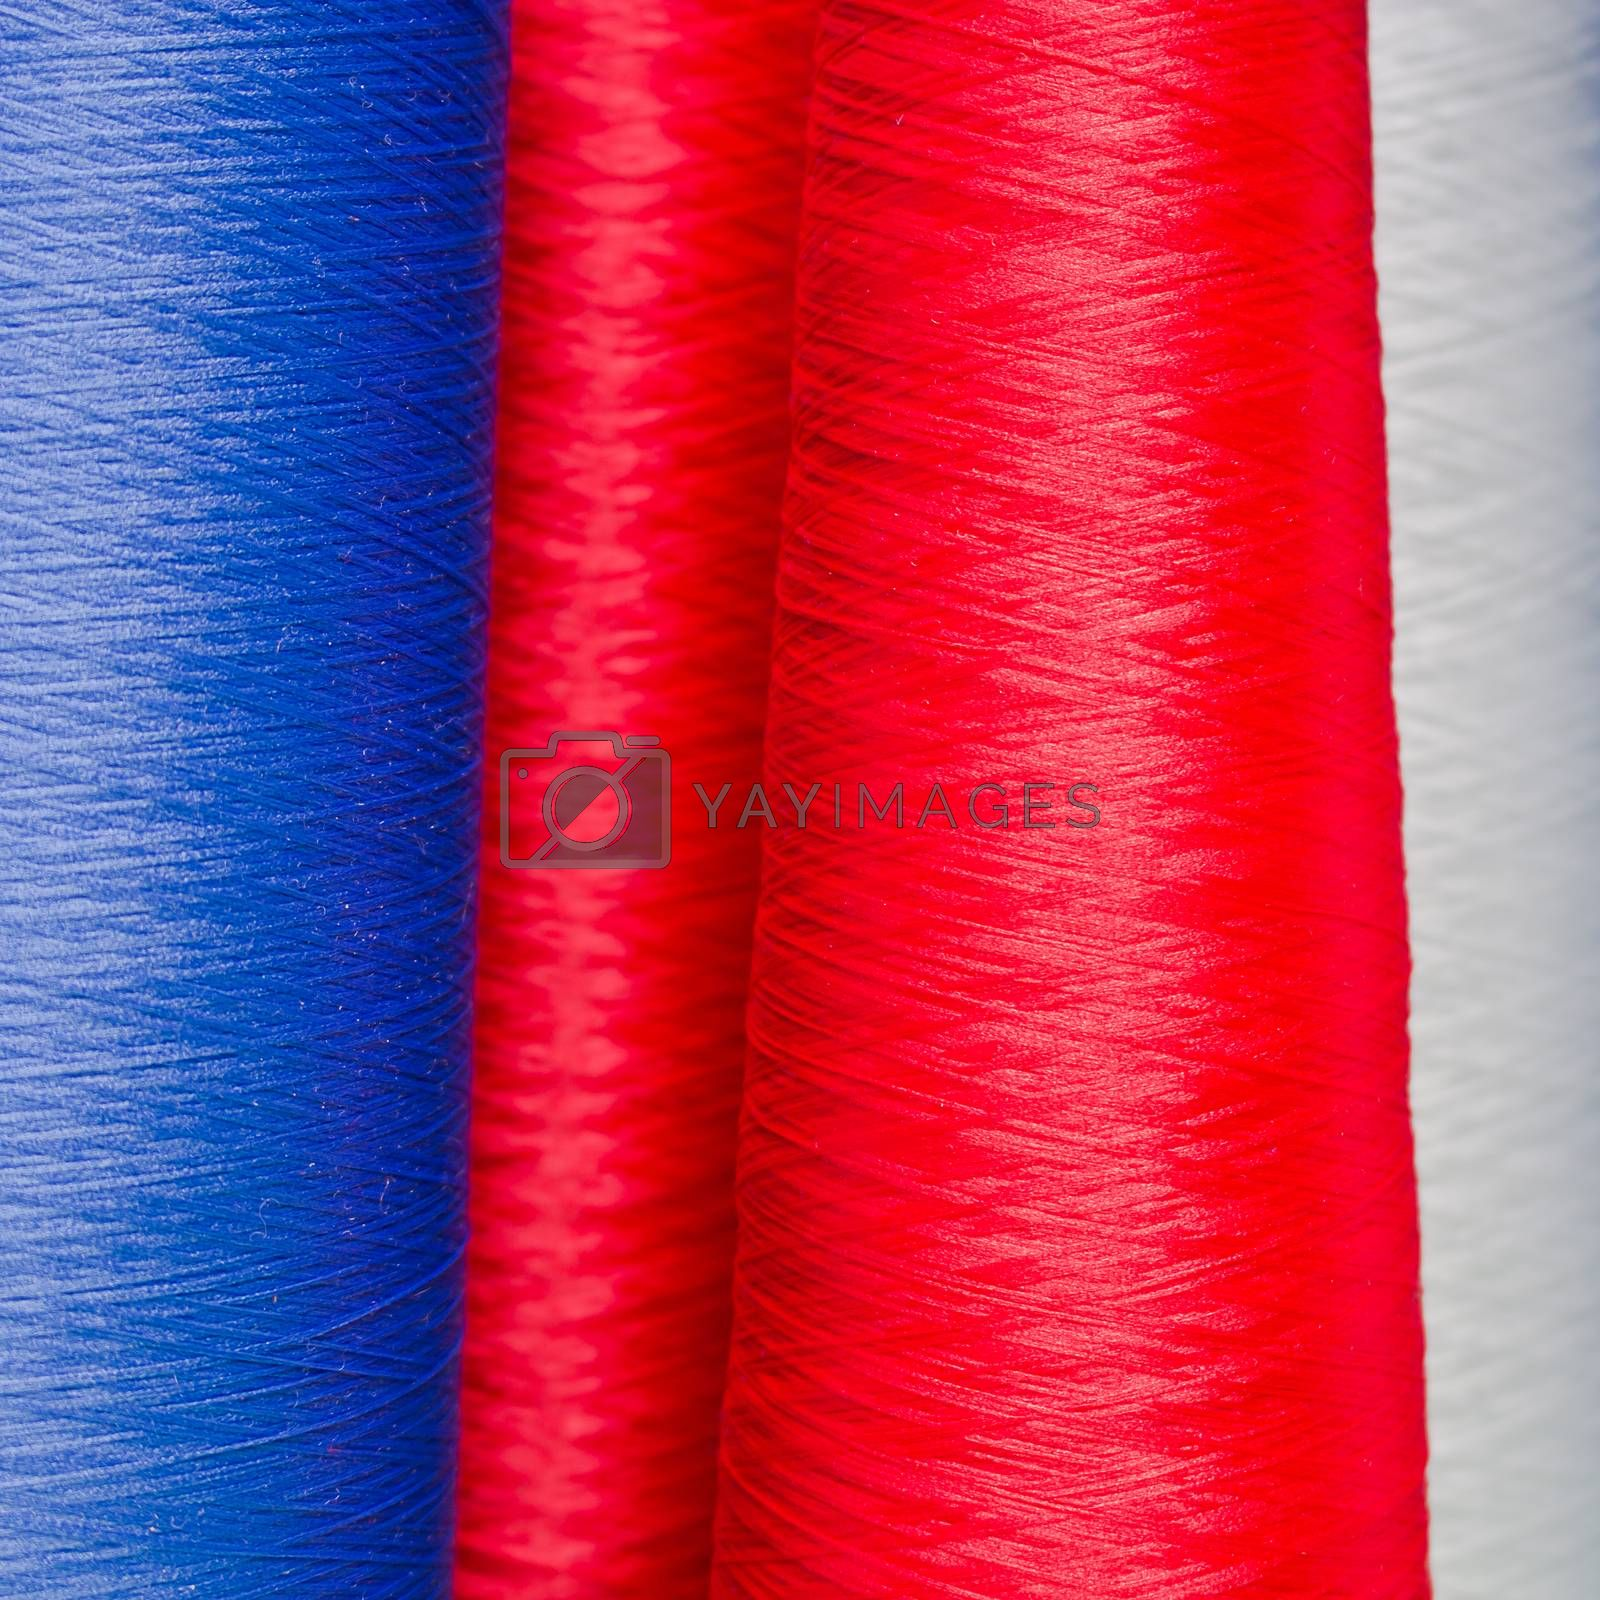 Colorful spool of thread